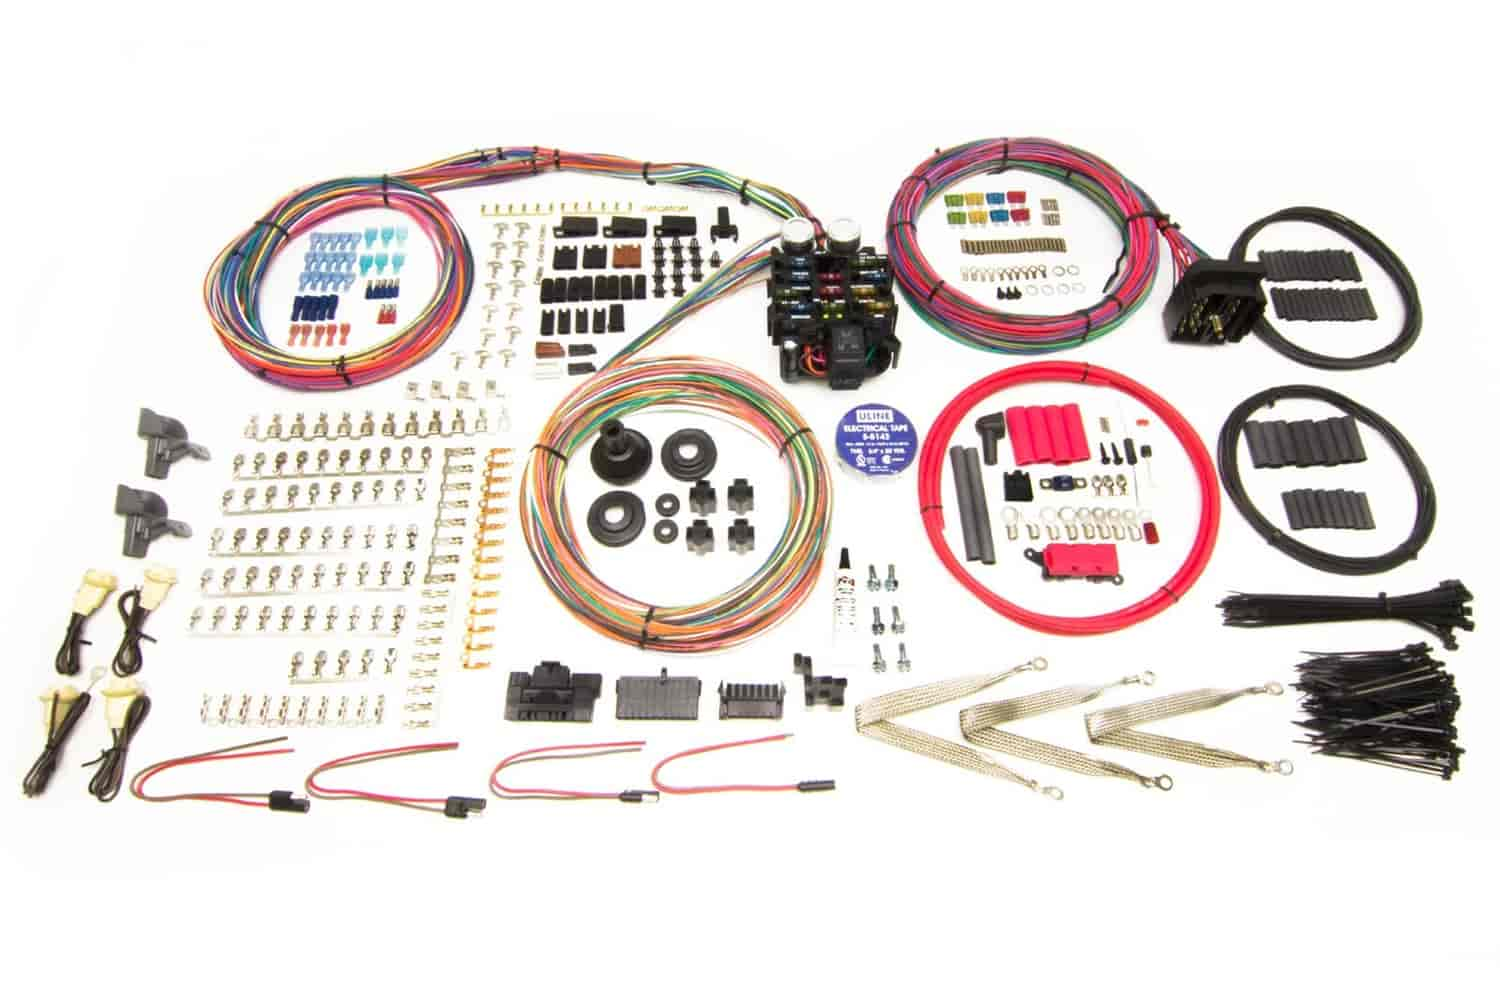 hight resolution of painless performance products pro series 23 circuit wiring harness kit